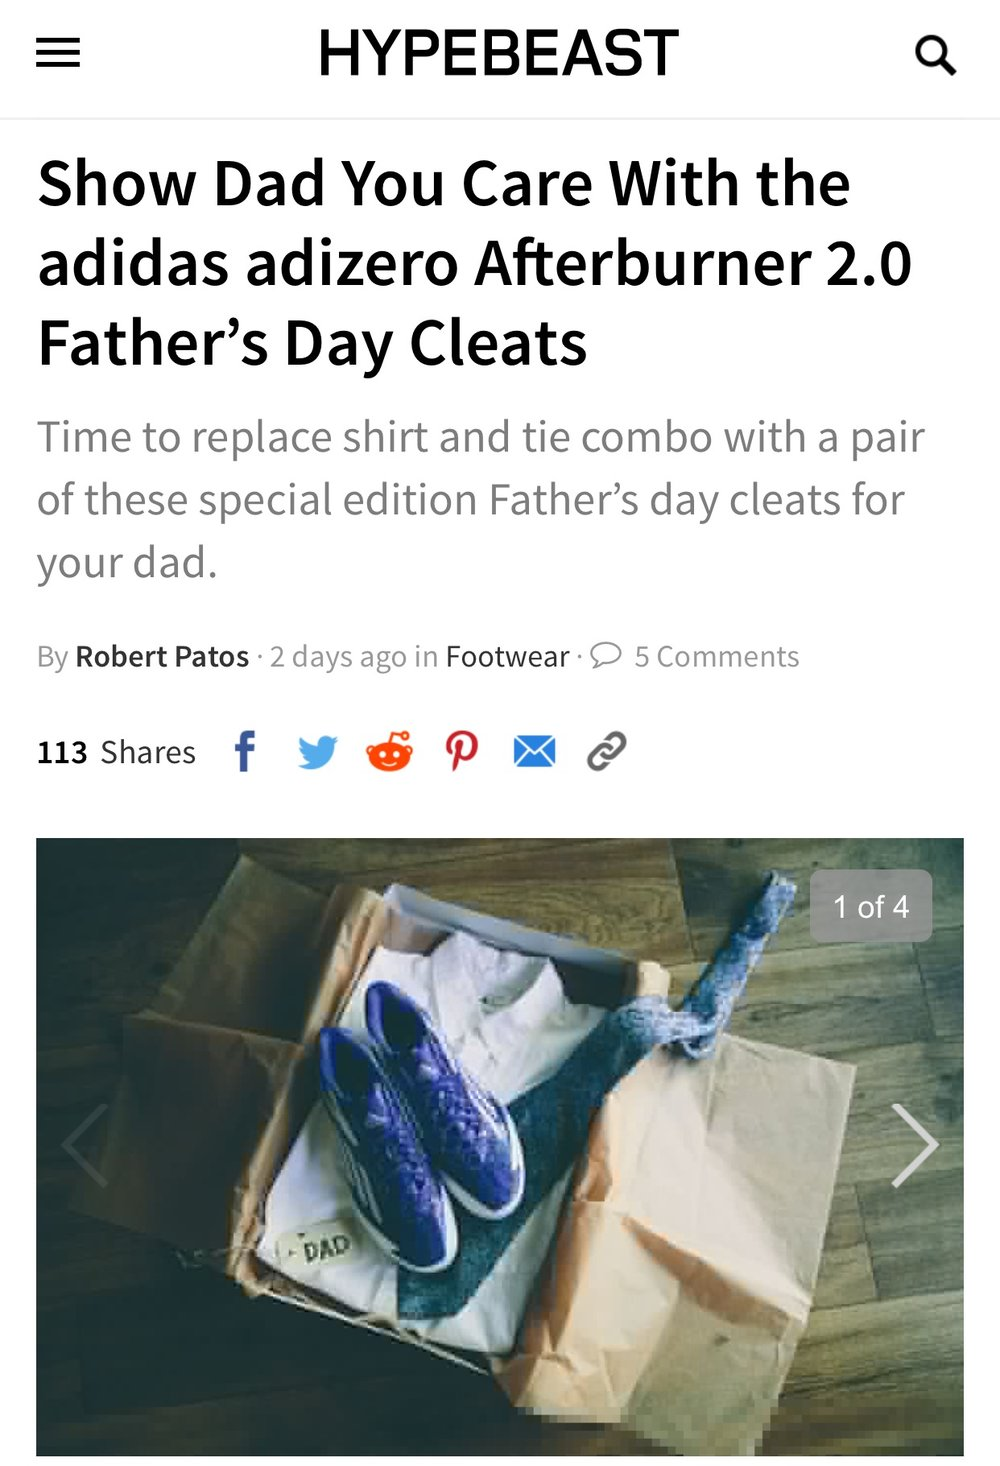 adidas Baseball on Hypebeast - Father's Day Cleats - June 2016